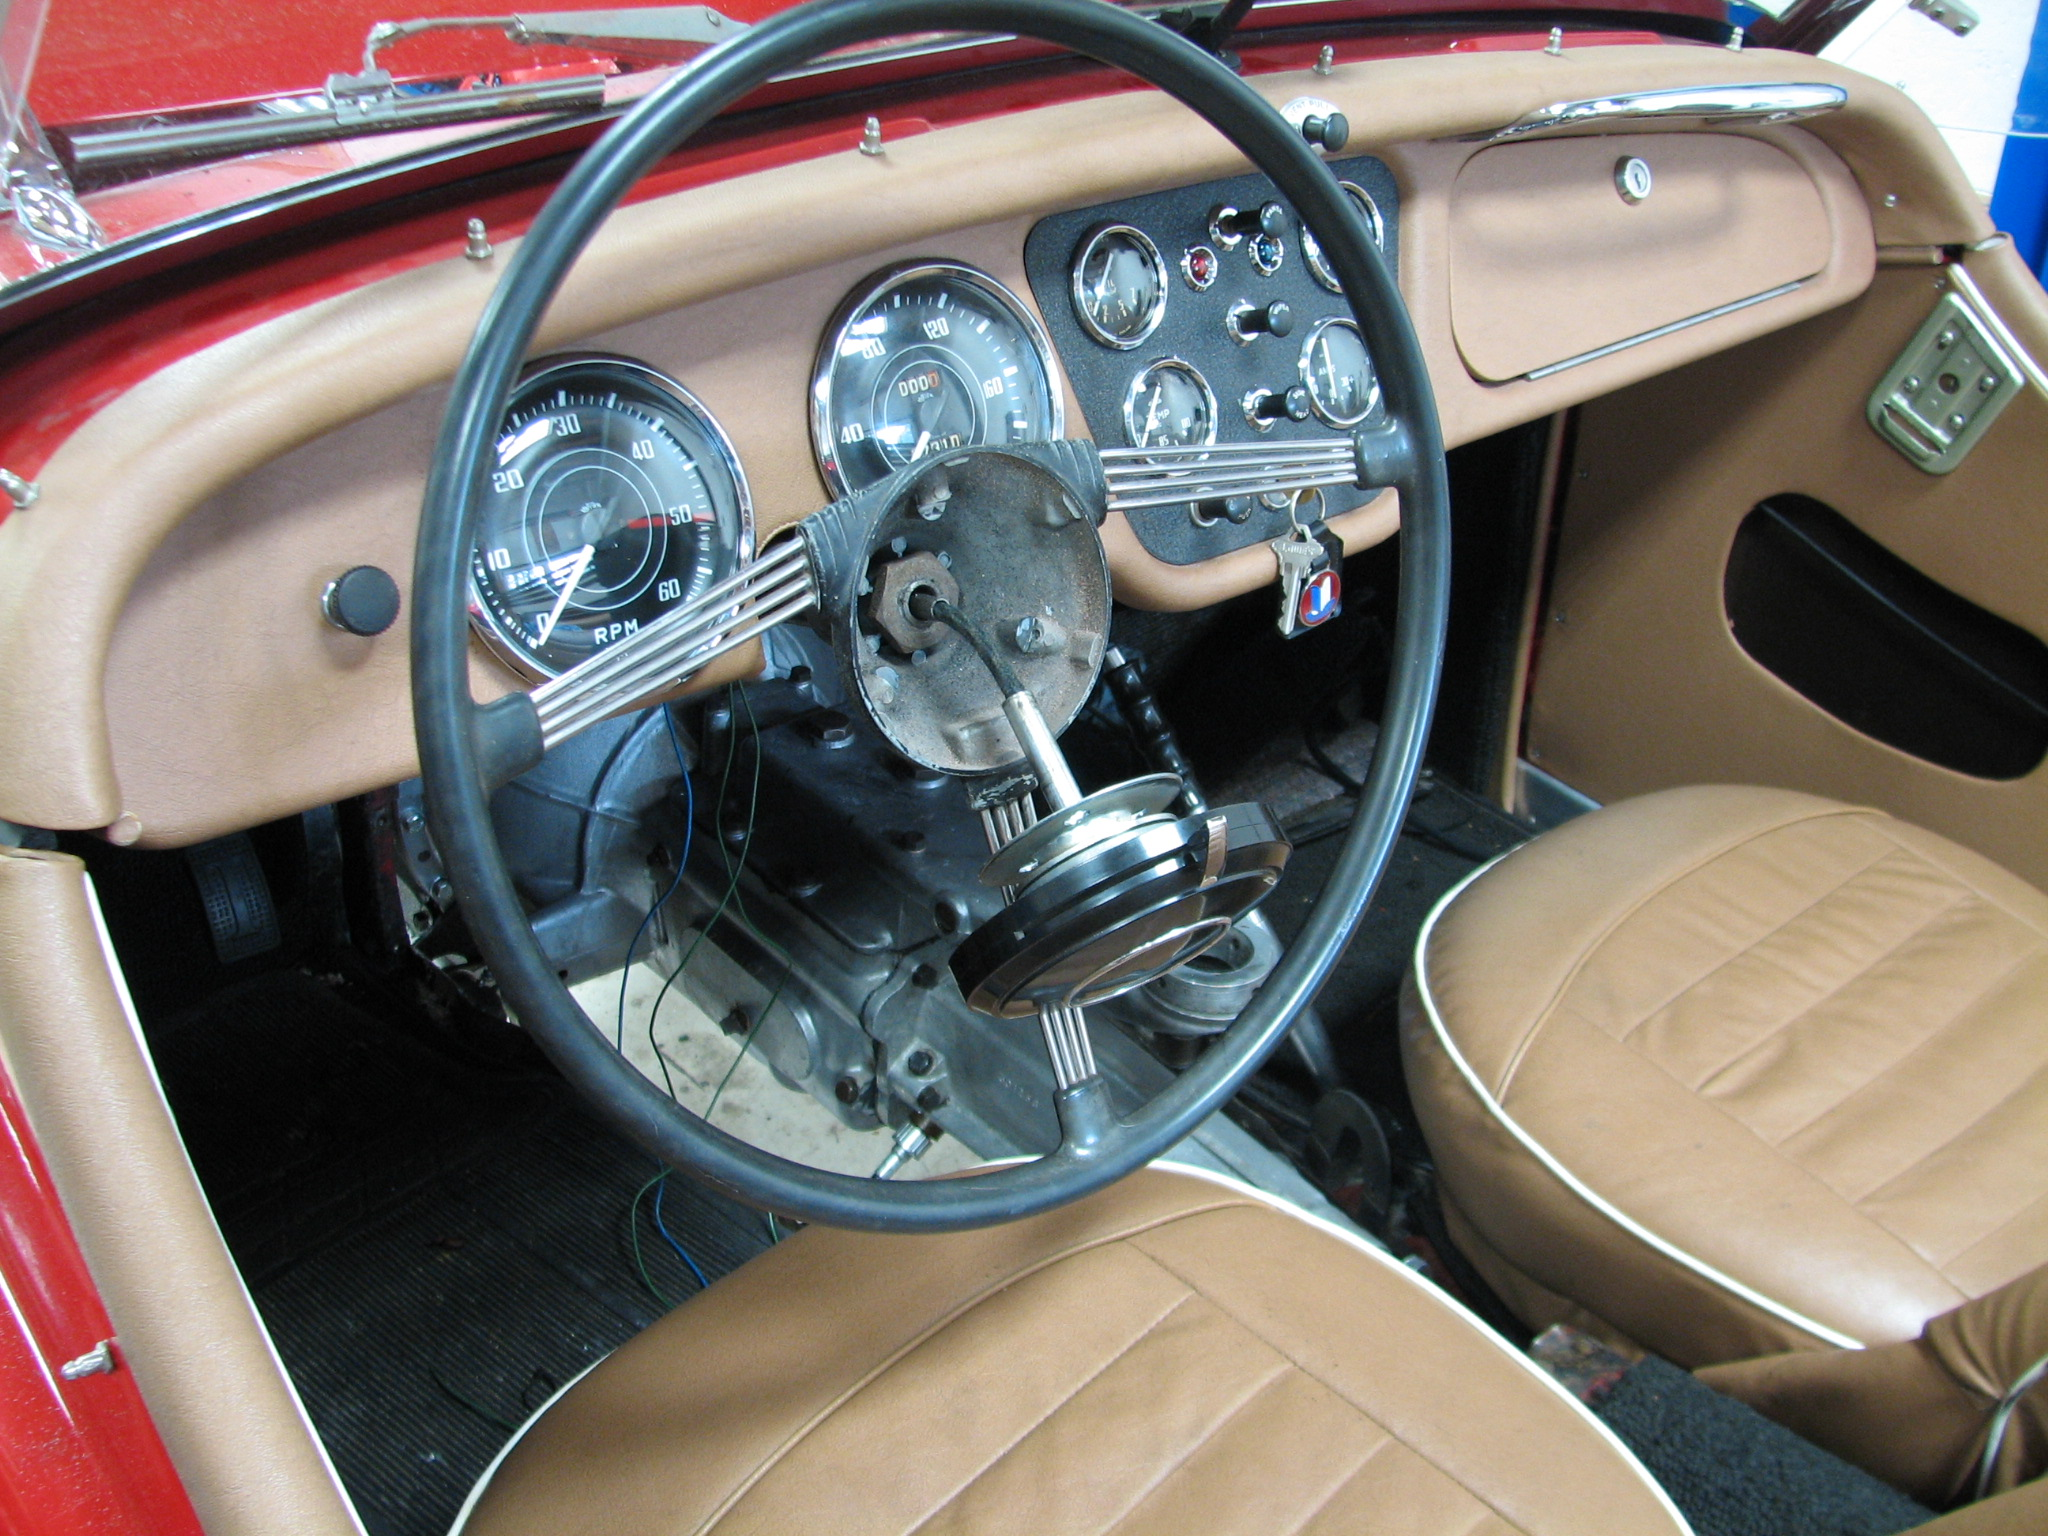 Triumph Tr3 Steering Column Wiring Change Your Idea With Motorsport Harness Uk Engine Rebuild Motorsports Rh Theukmotorsports Com 1984 Chevy Silverado Diagram